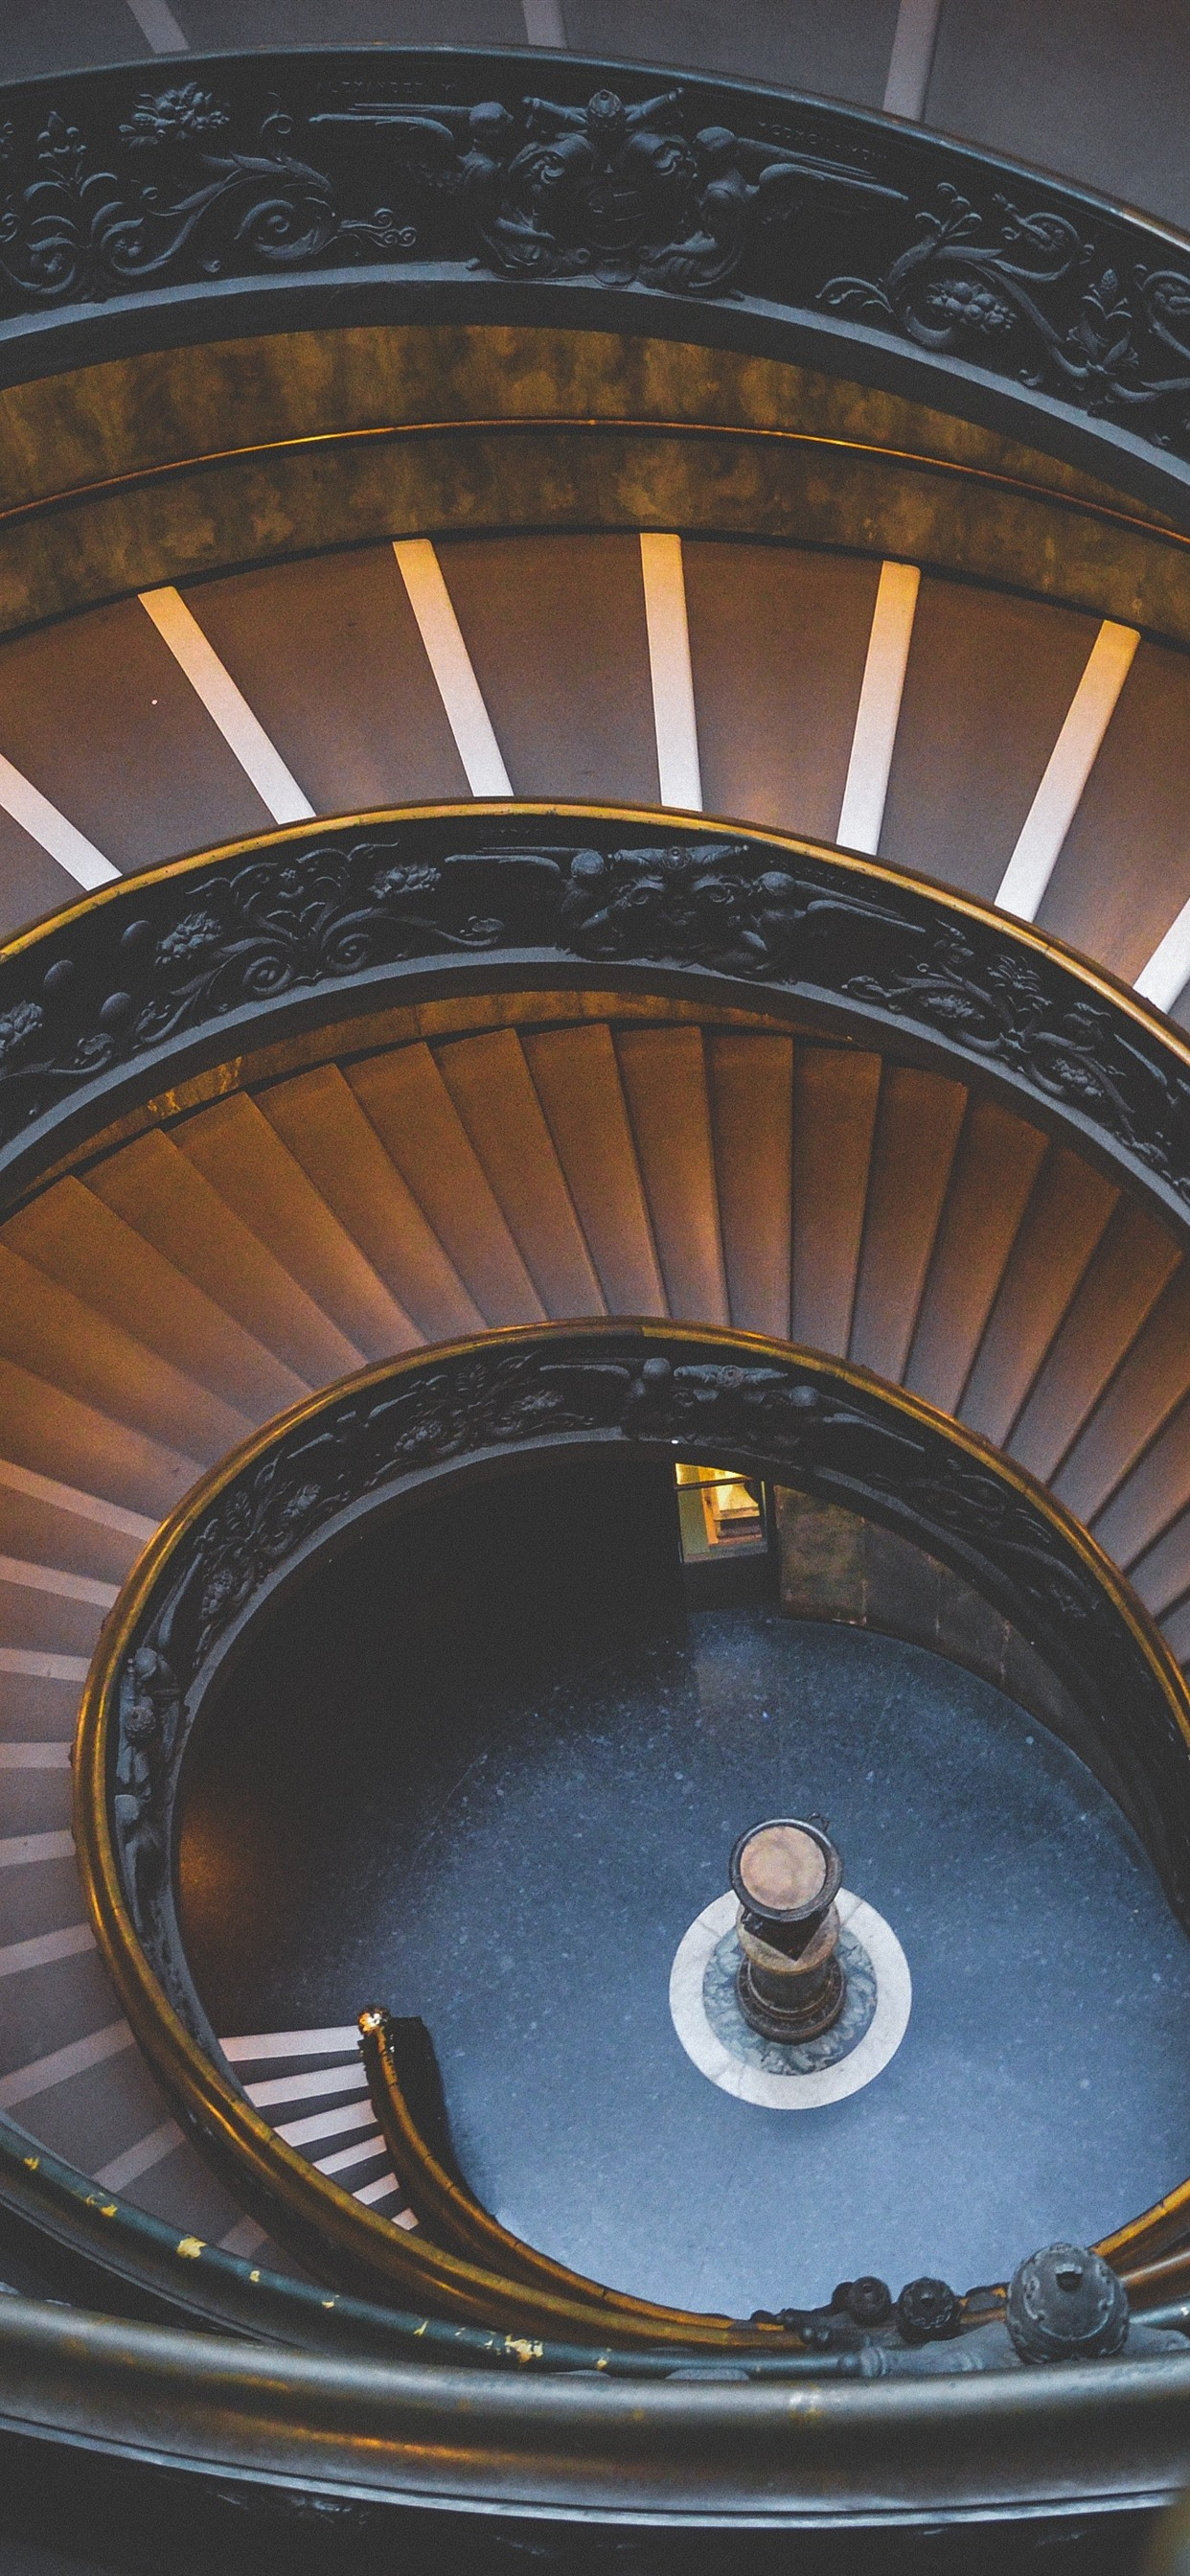 Stairs Spiral Interior 1242x2688 Iphone Xs Max Wallpaper